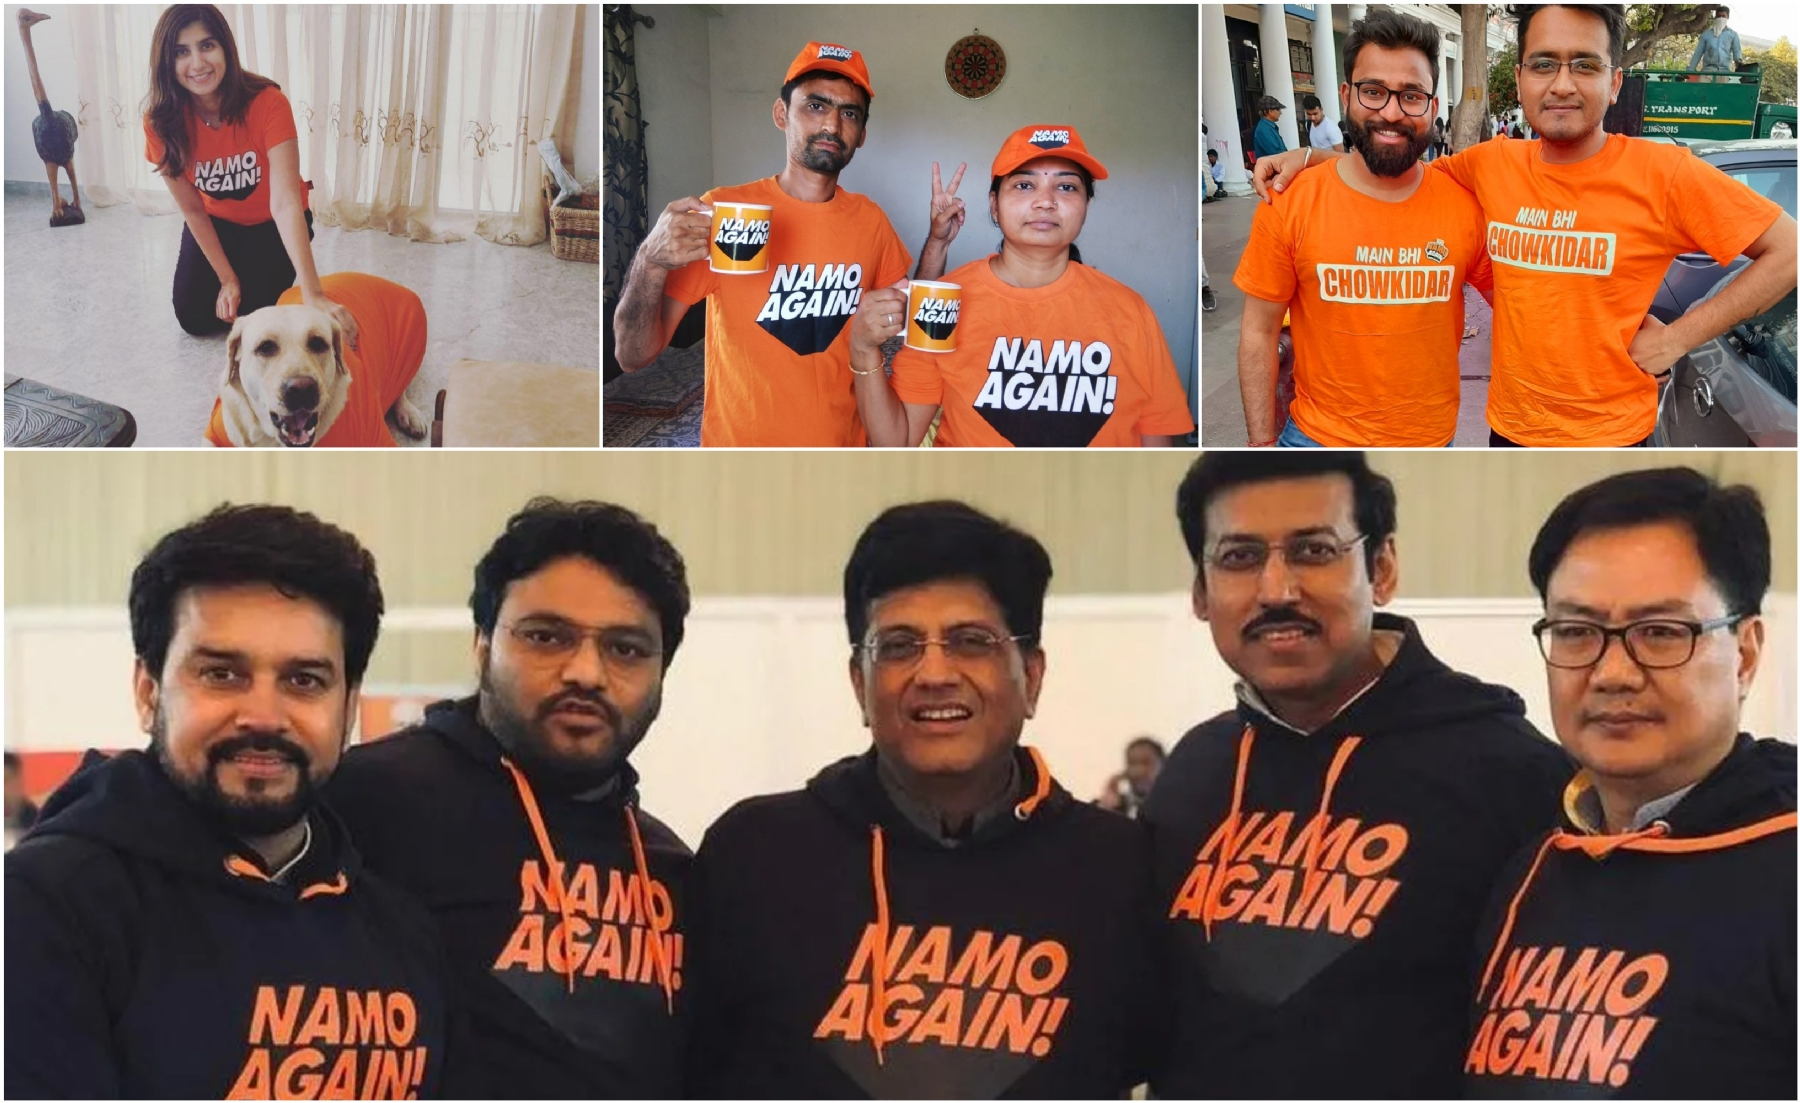 1e1f09f5 ... the NaMo merchandise in India is set to promote dynamism, creativity  and innovation in the fashion industry. T-shirts branding 'NaMo Again', ...